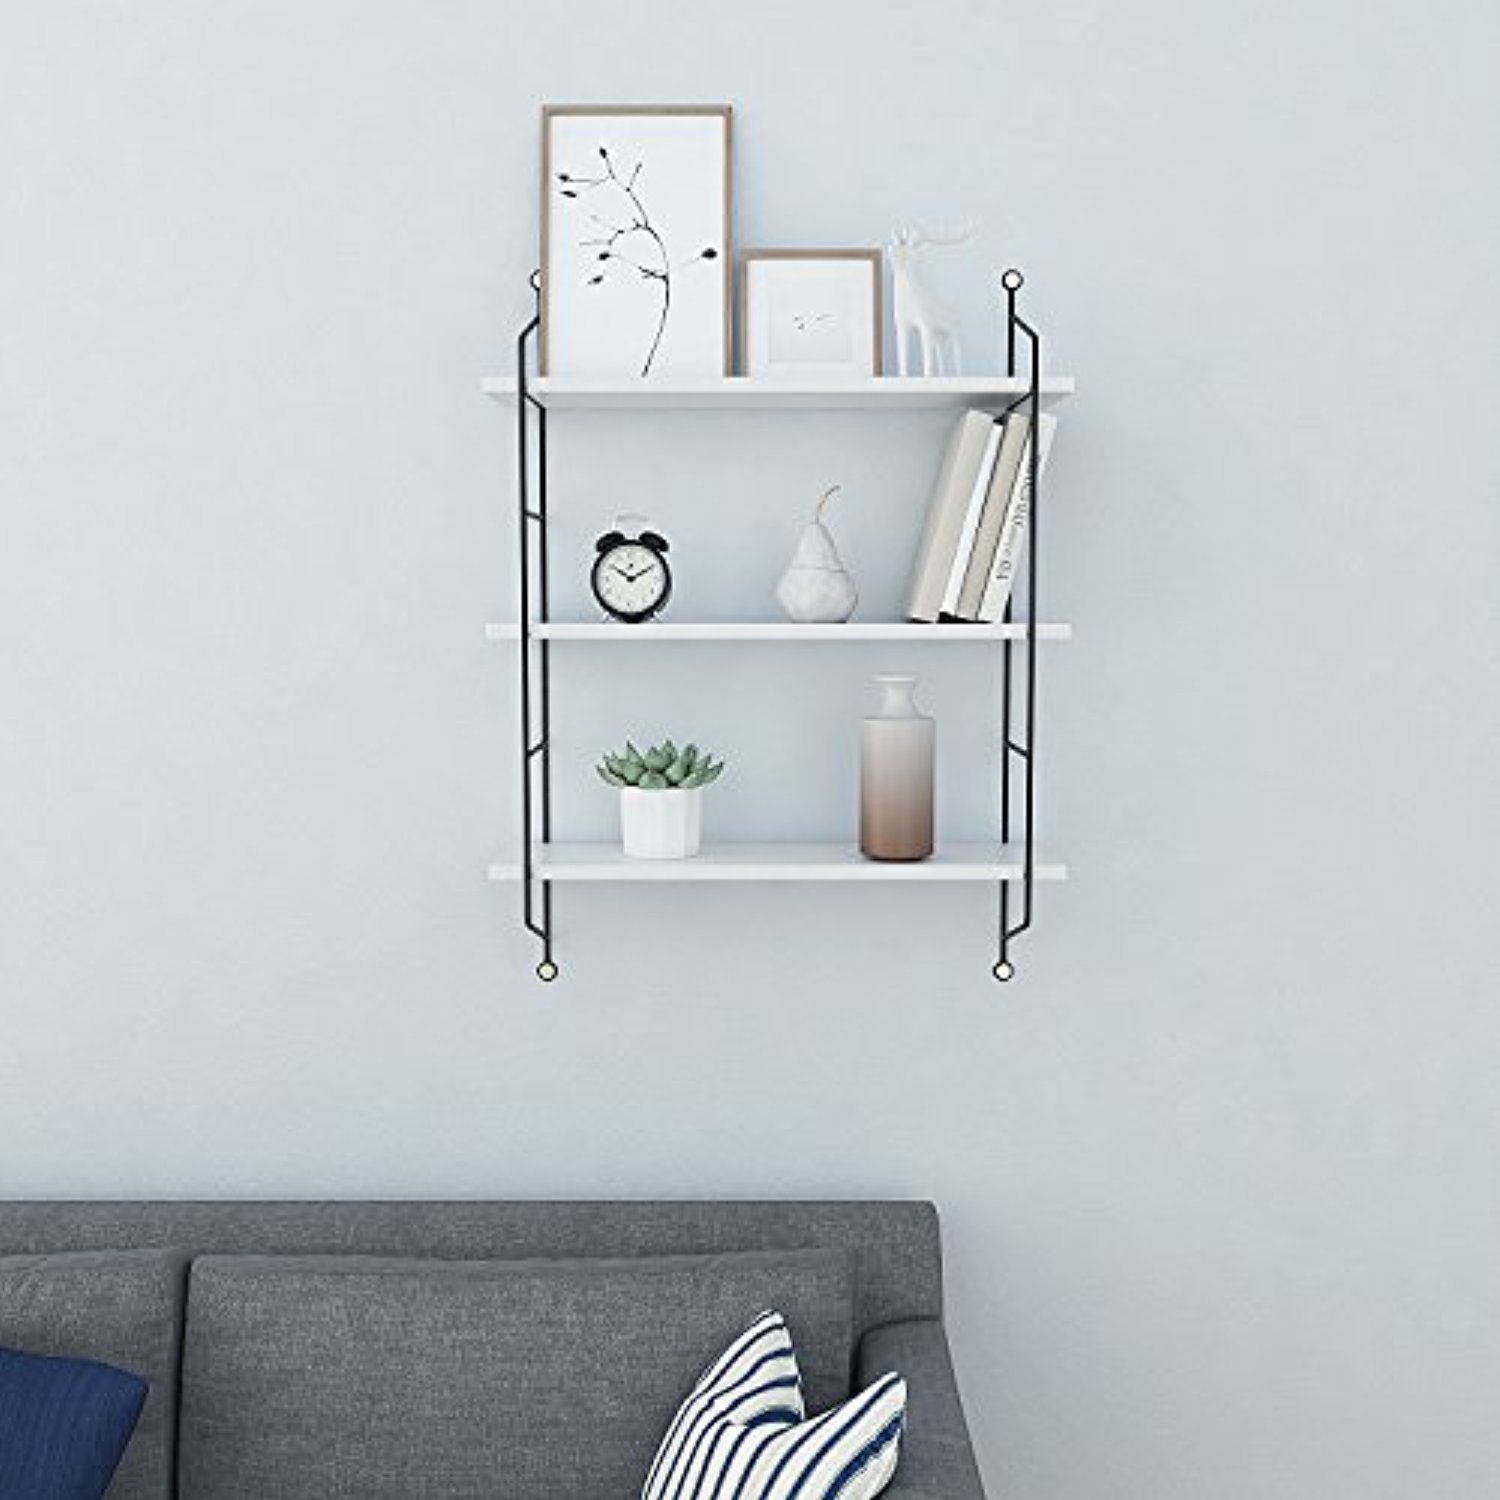 Homdox Industrial Floating Shelves Wall Mounted Metal Frame Urban Chic Display Wall Shelf 3 Tier White Floating Shelves Industrial Floating Shelves Shelves